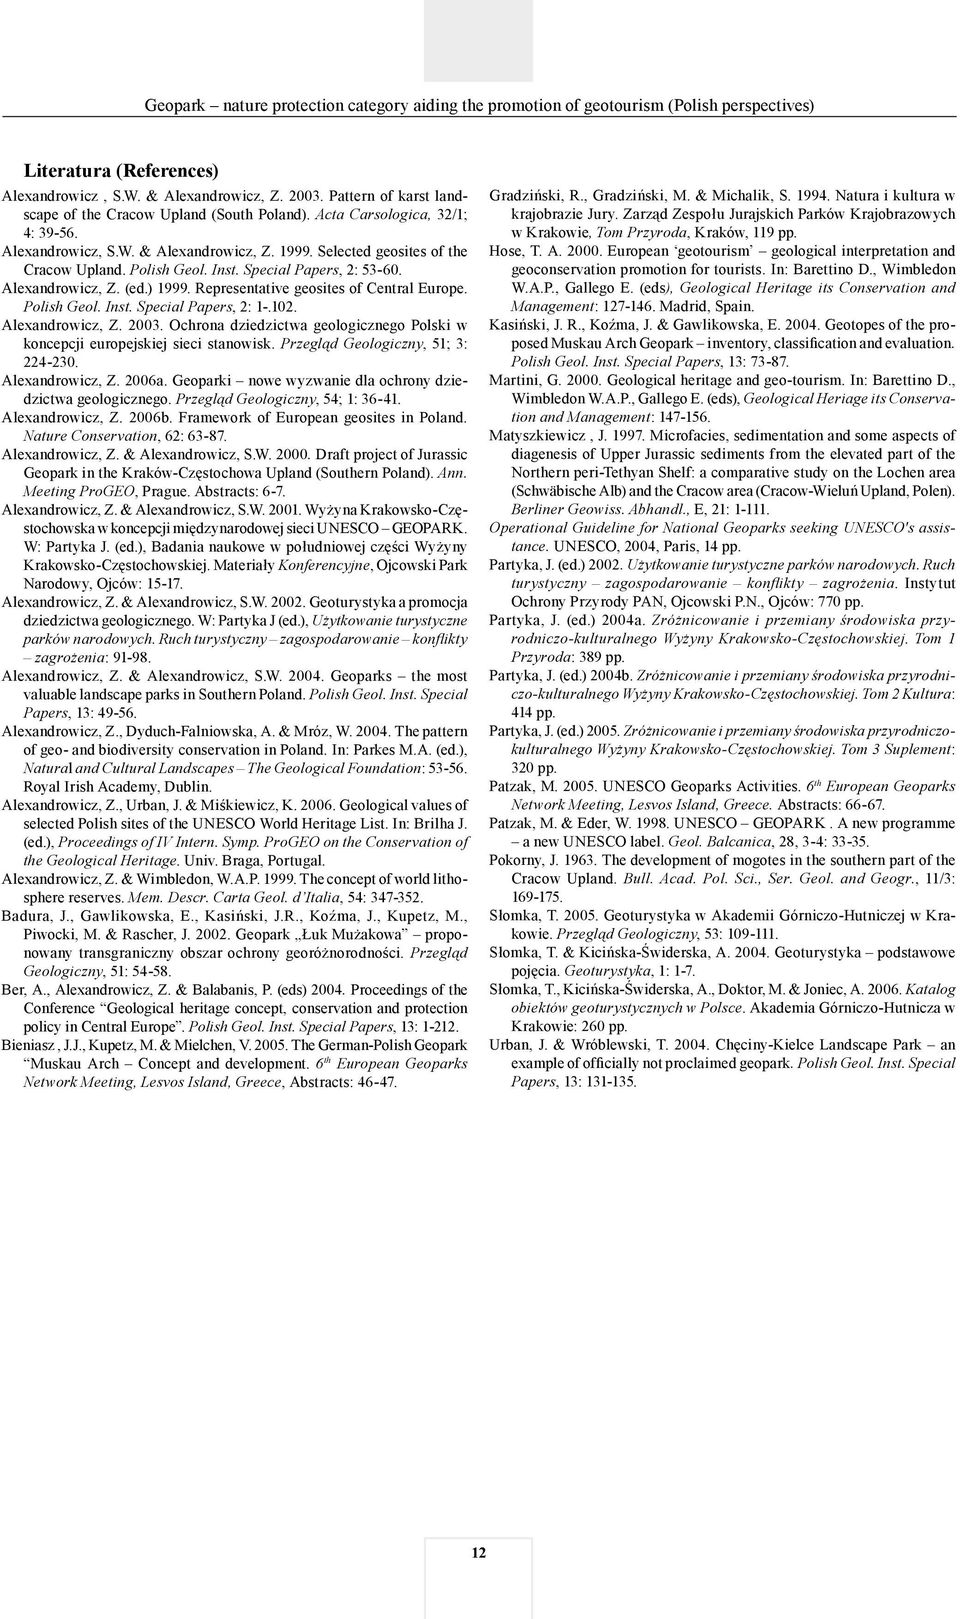 Inst. Special Papers, 2: 53-60. Alexandrowicz, Z. (ed.) 1999. Representative geosites of Central Europe. Polish Geol. Inst. Special Papers, 2: 1-.102. Alexandrowicz, Z. 2003.